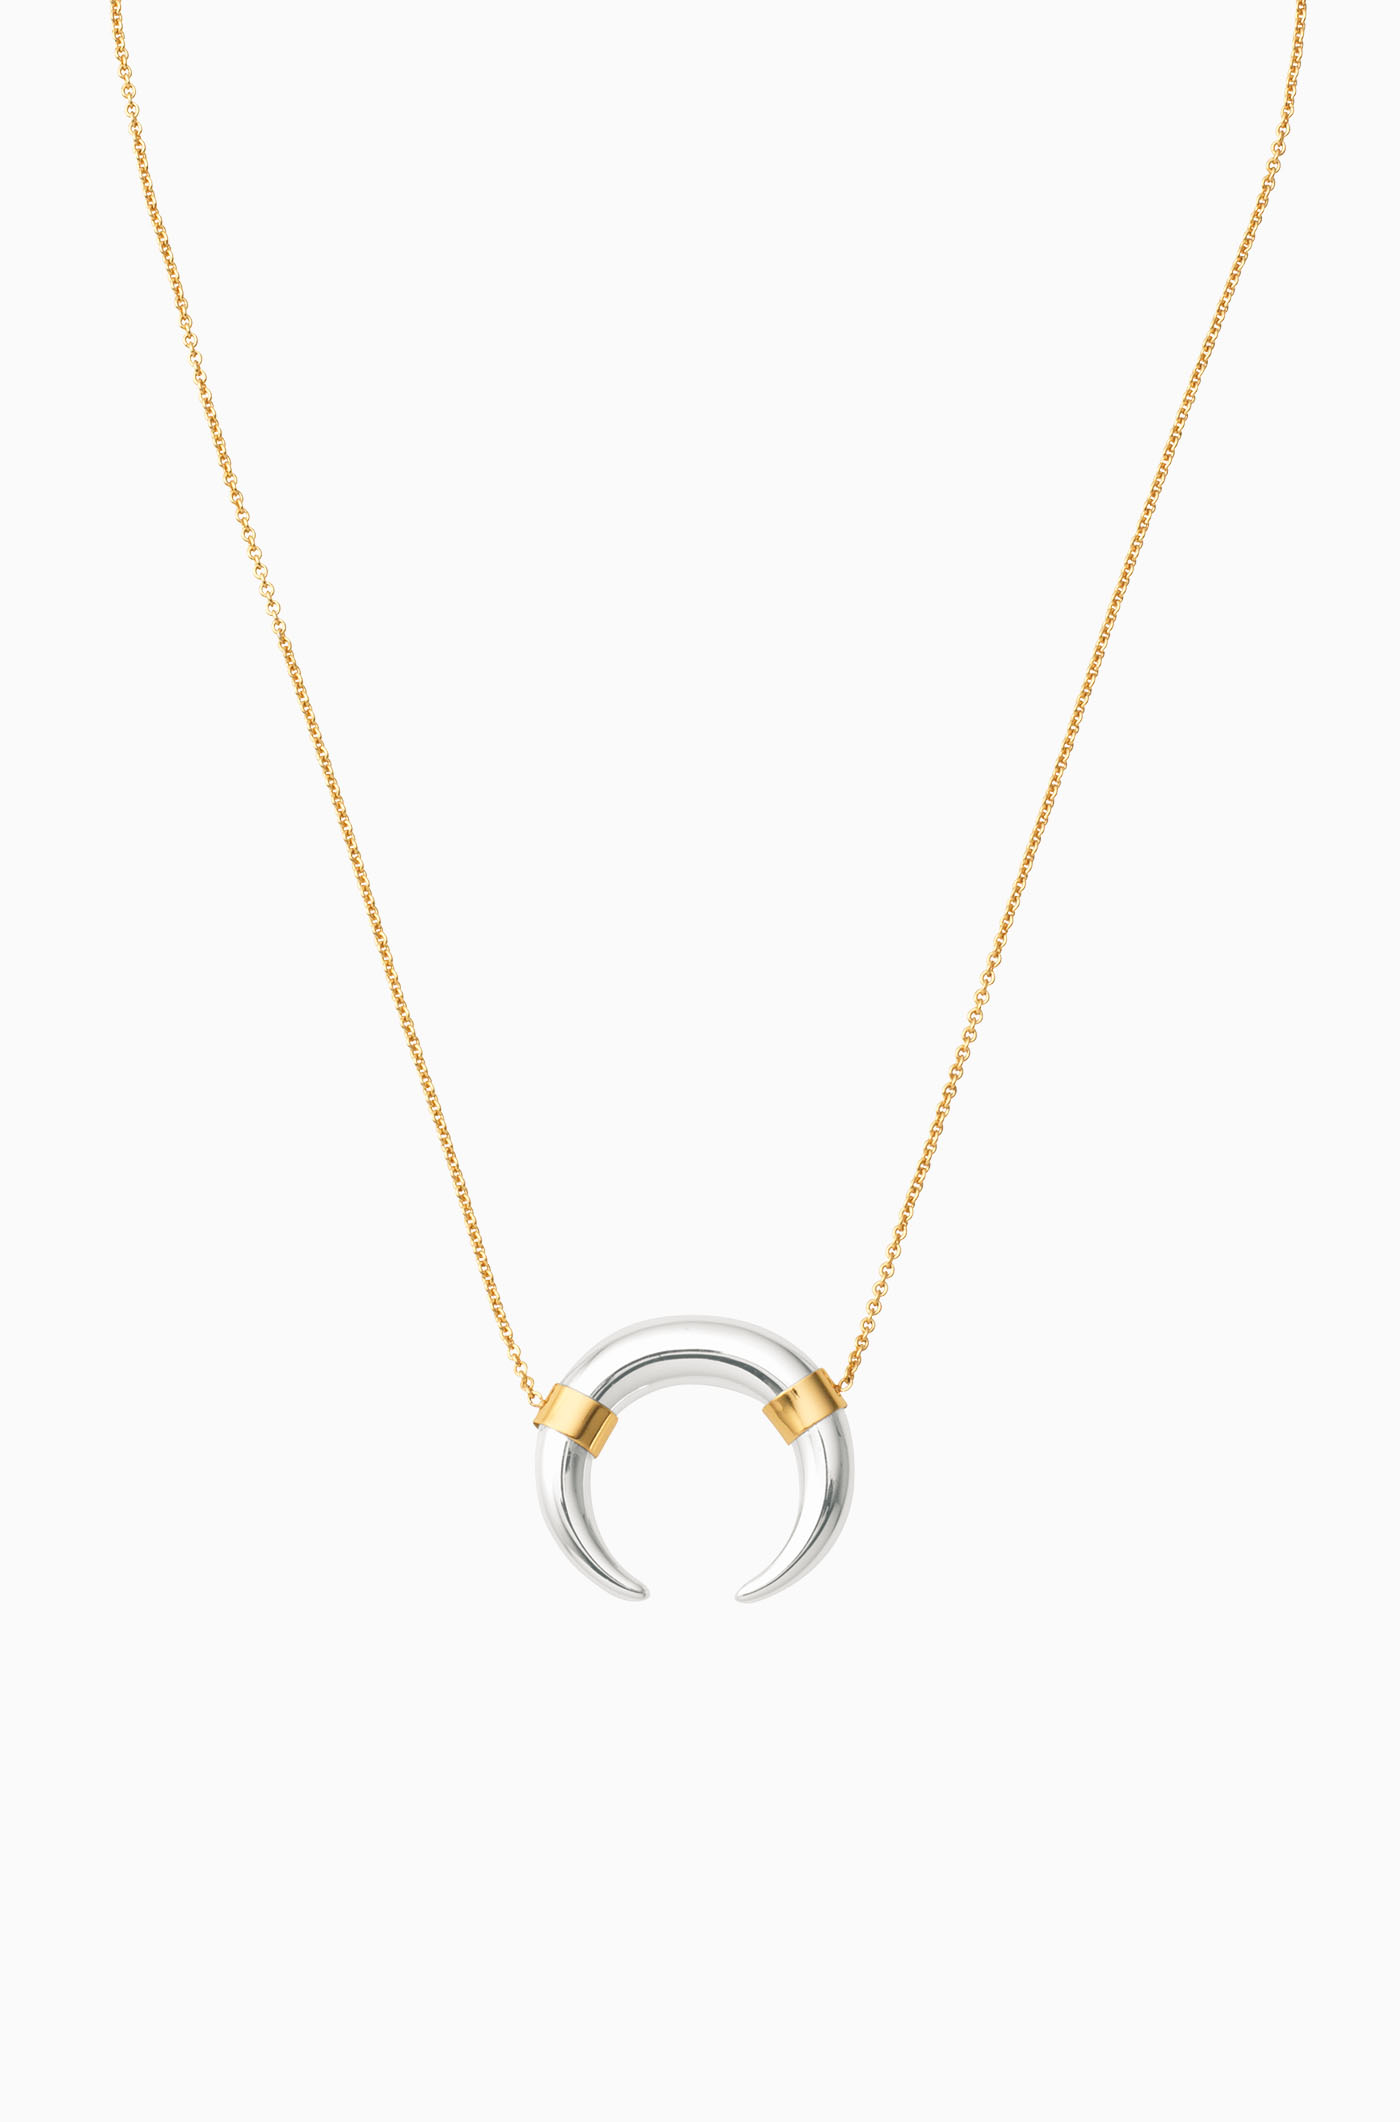 Crescent Necklace - $49